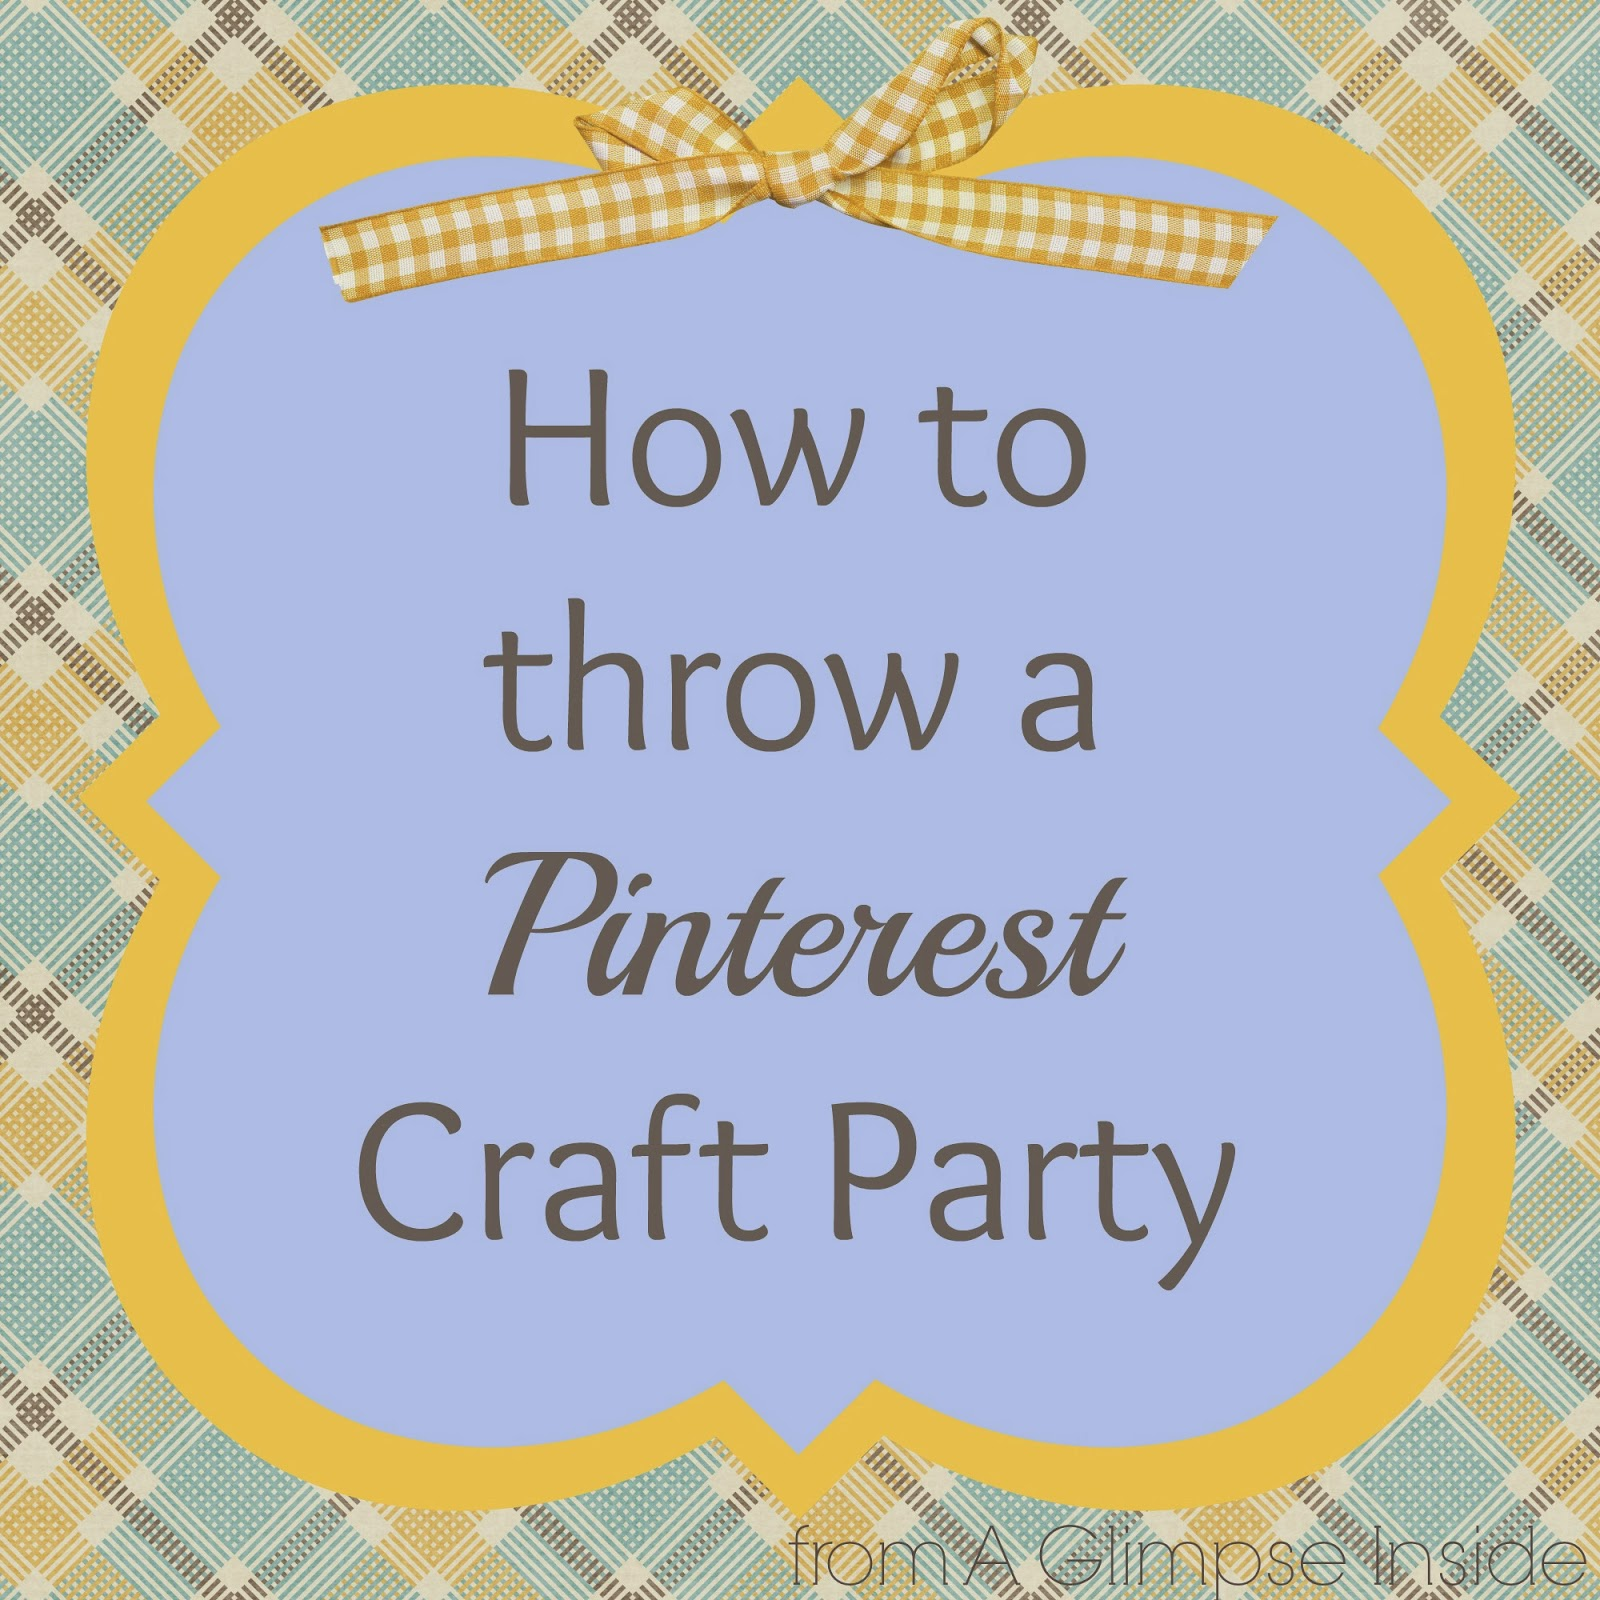 http://www.aglimpseinsideblog.com/2014/01/how-to-throw-pinterest-craft-party.html